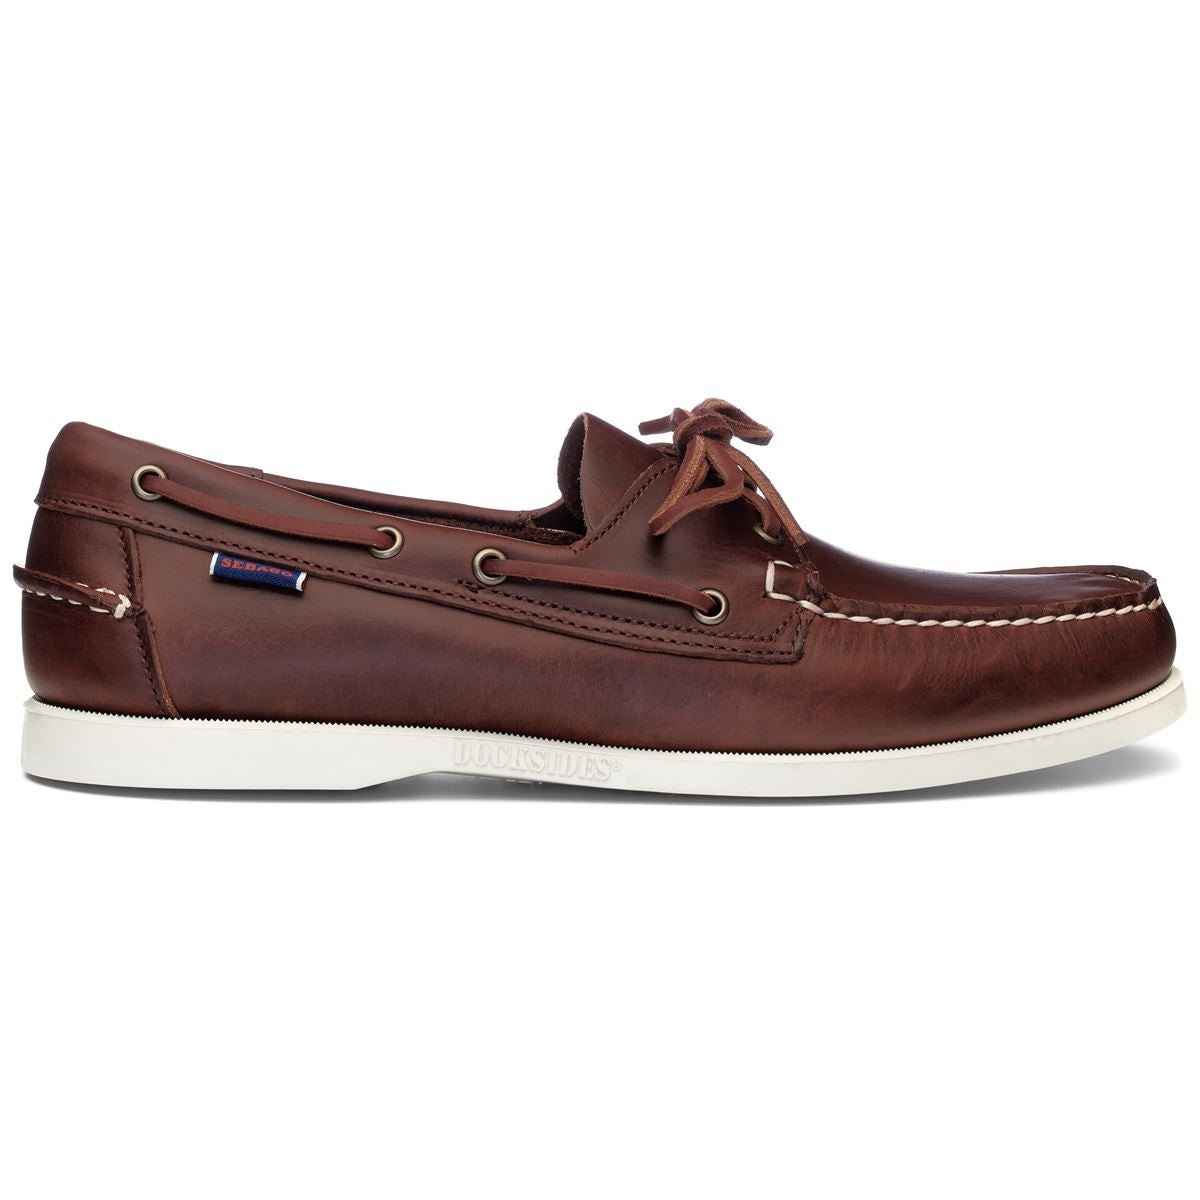 Image of Docksides light brown waxed calf by Sebago